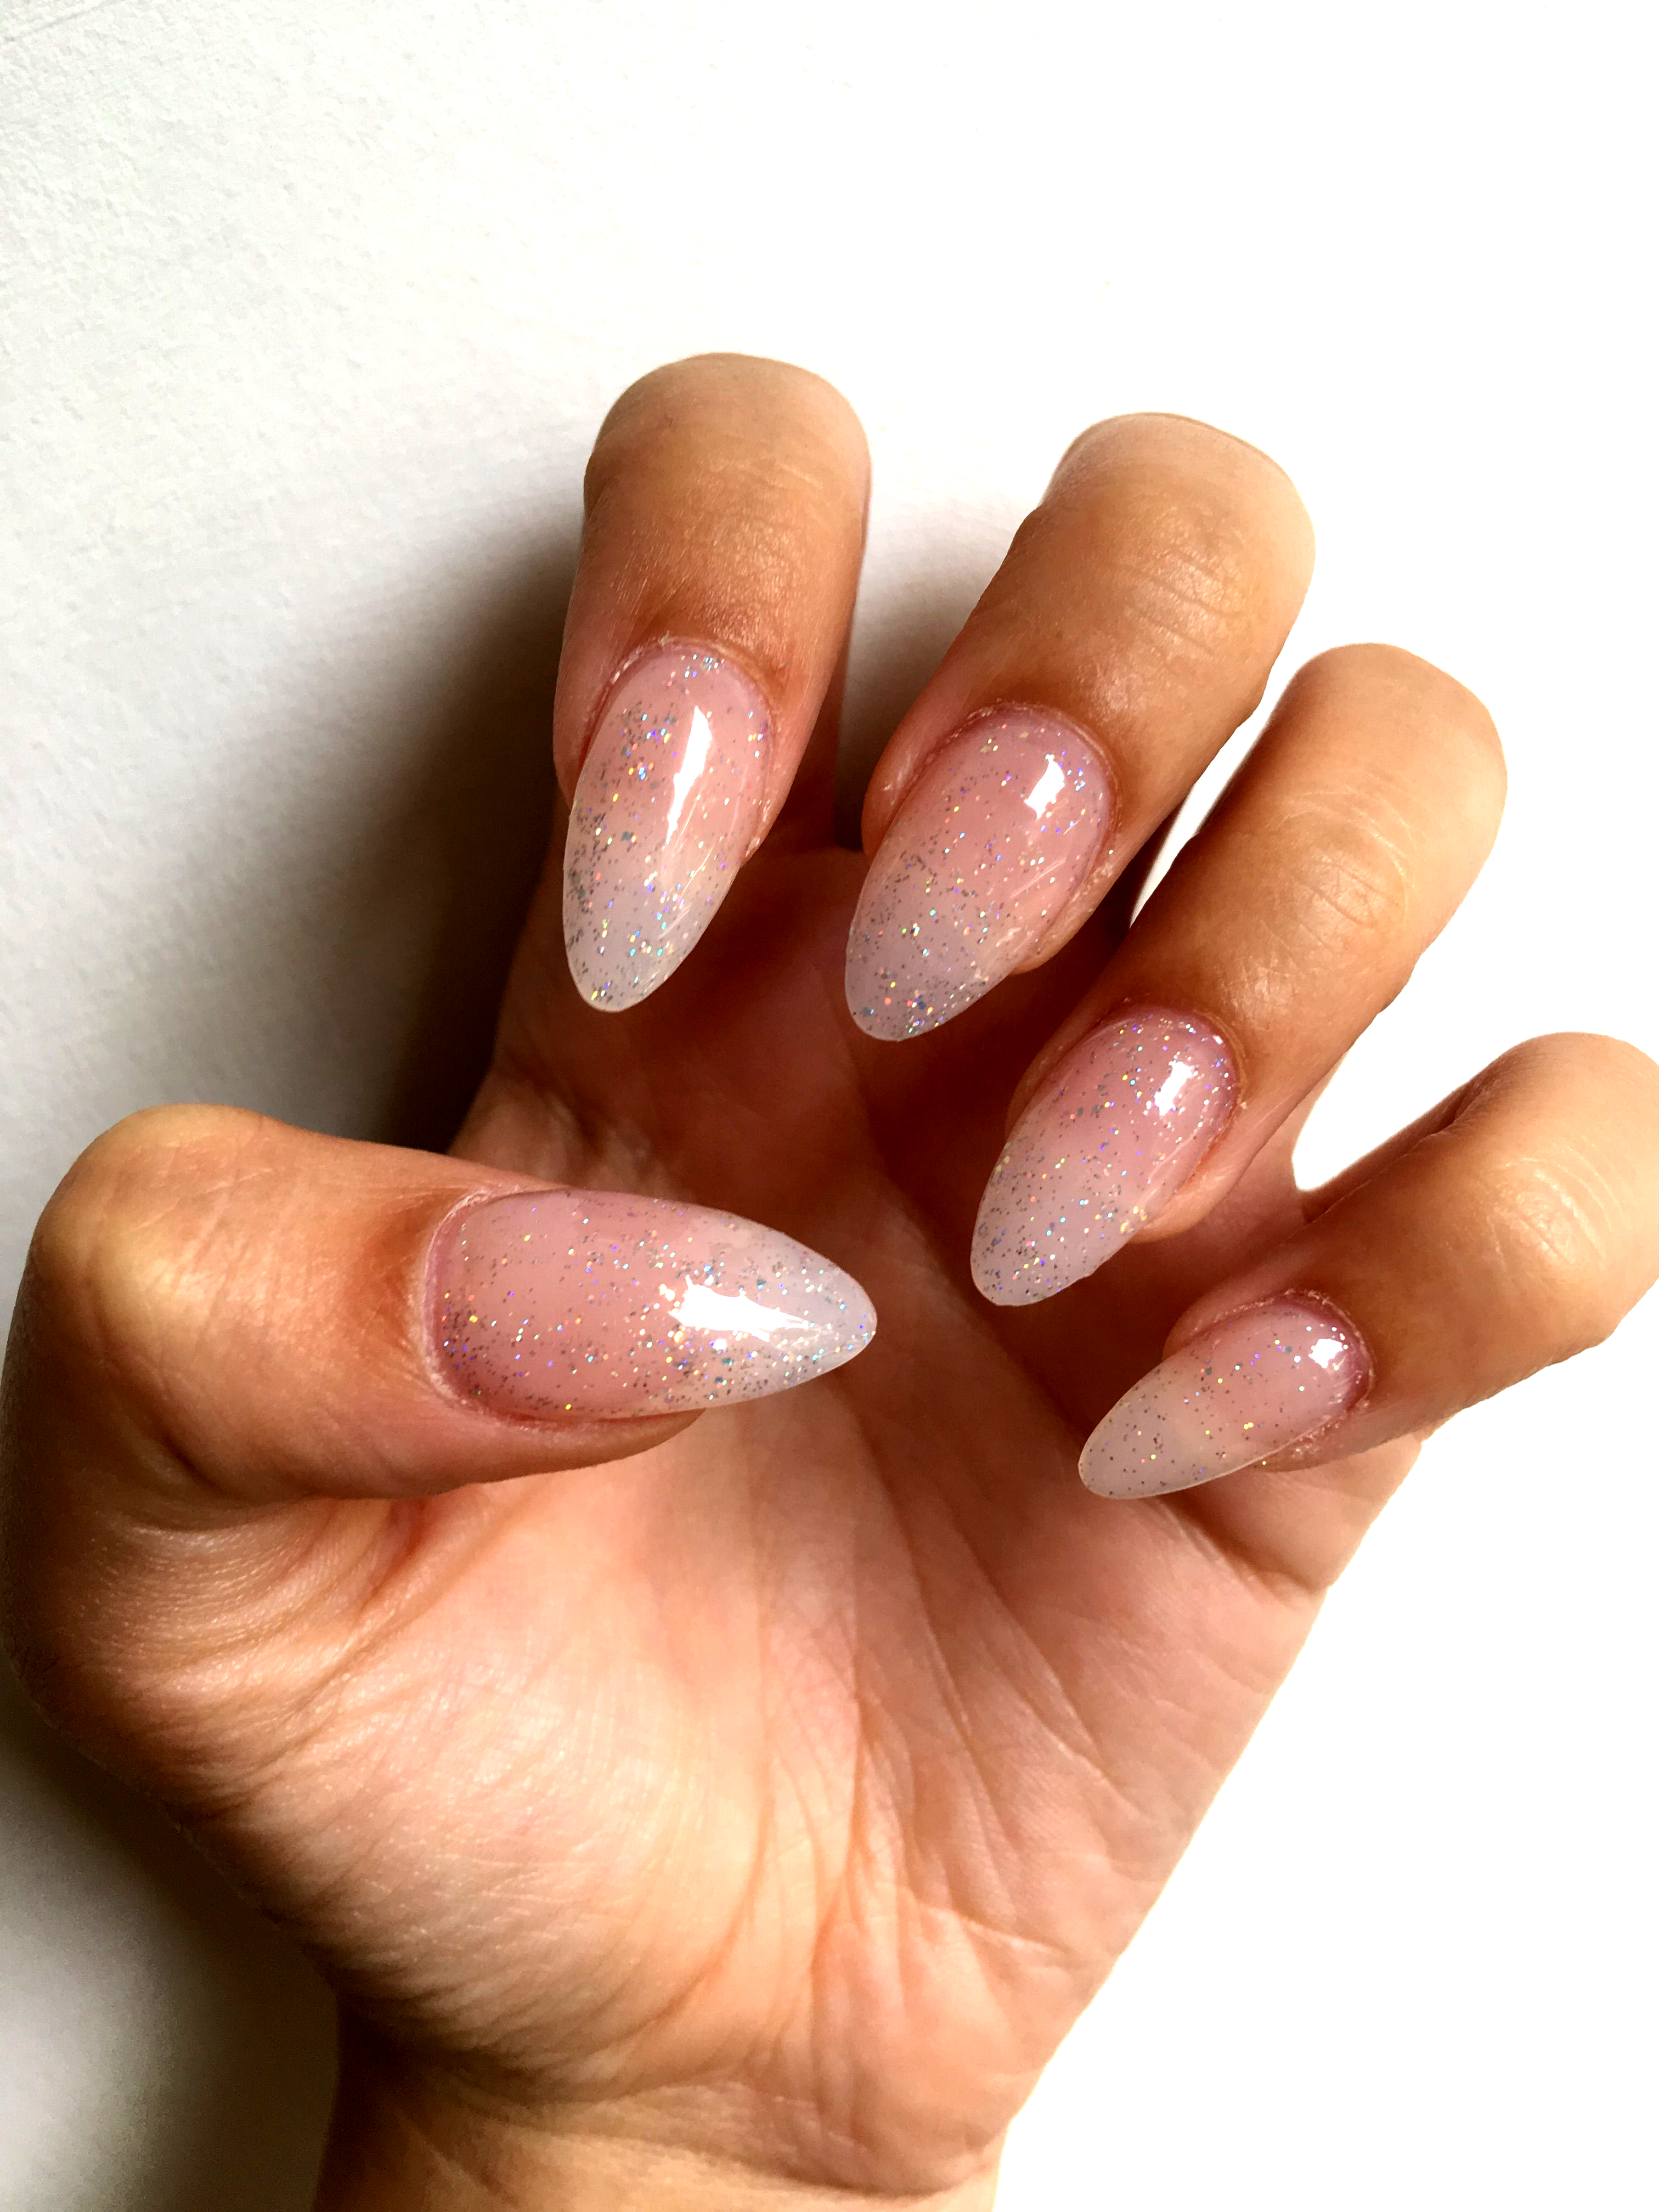 Clear Acrylic Almond Nails With Gel Glitter Polish In 2020 Almond Acrylic Nails Designs Clear Glitter Nails Almond Acrylic Nails